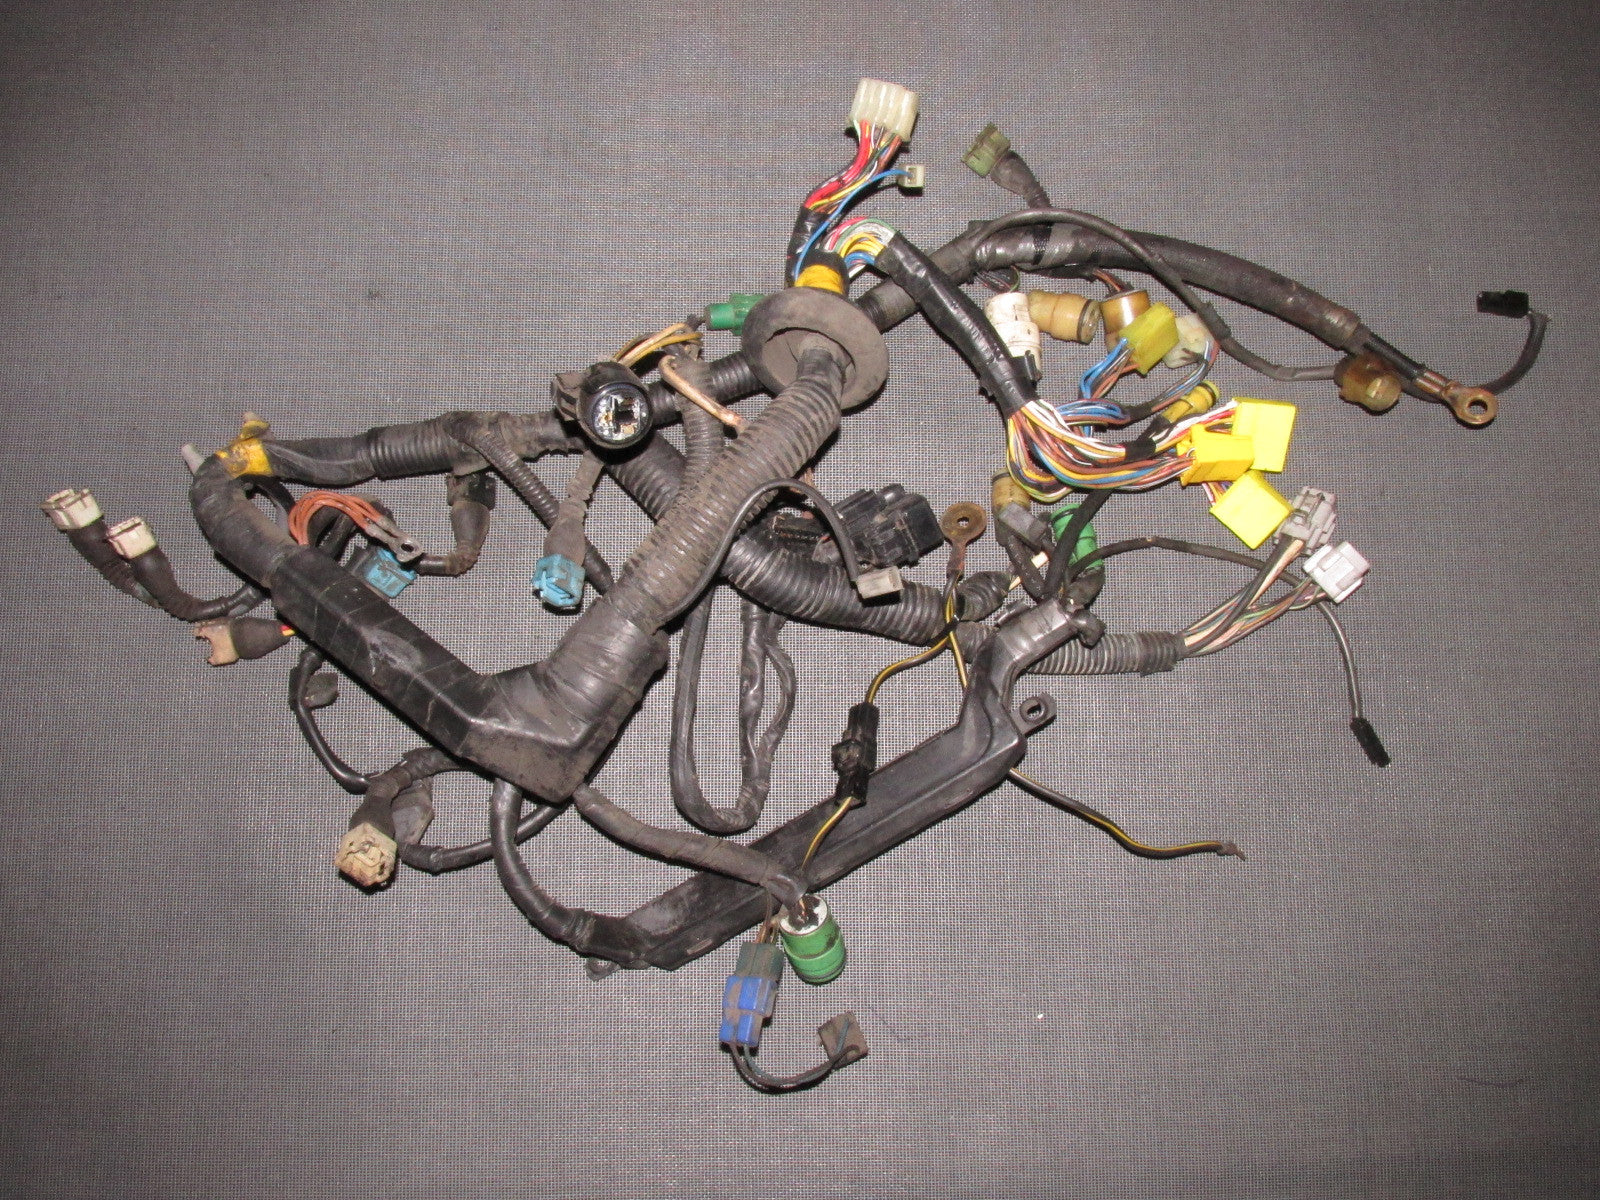 Mr2 Wiring Harness Diagrams Toyota 85 86 87 88 89 Oem 4age Engine Aw11 1991